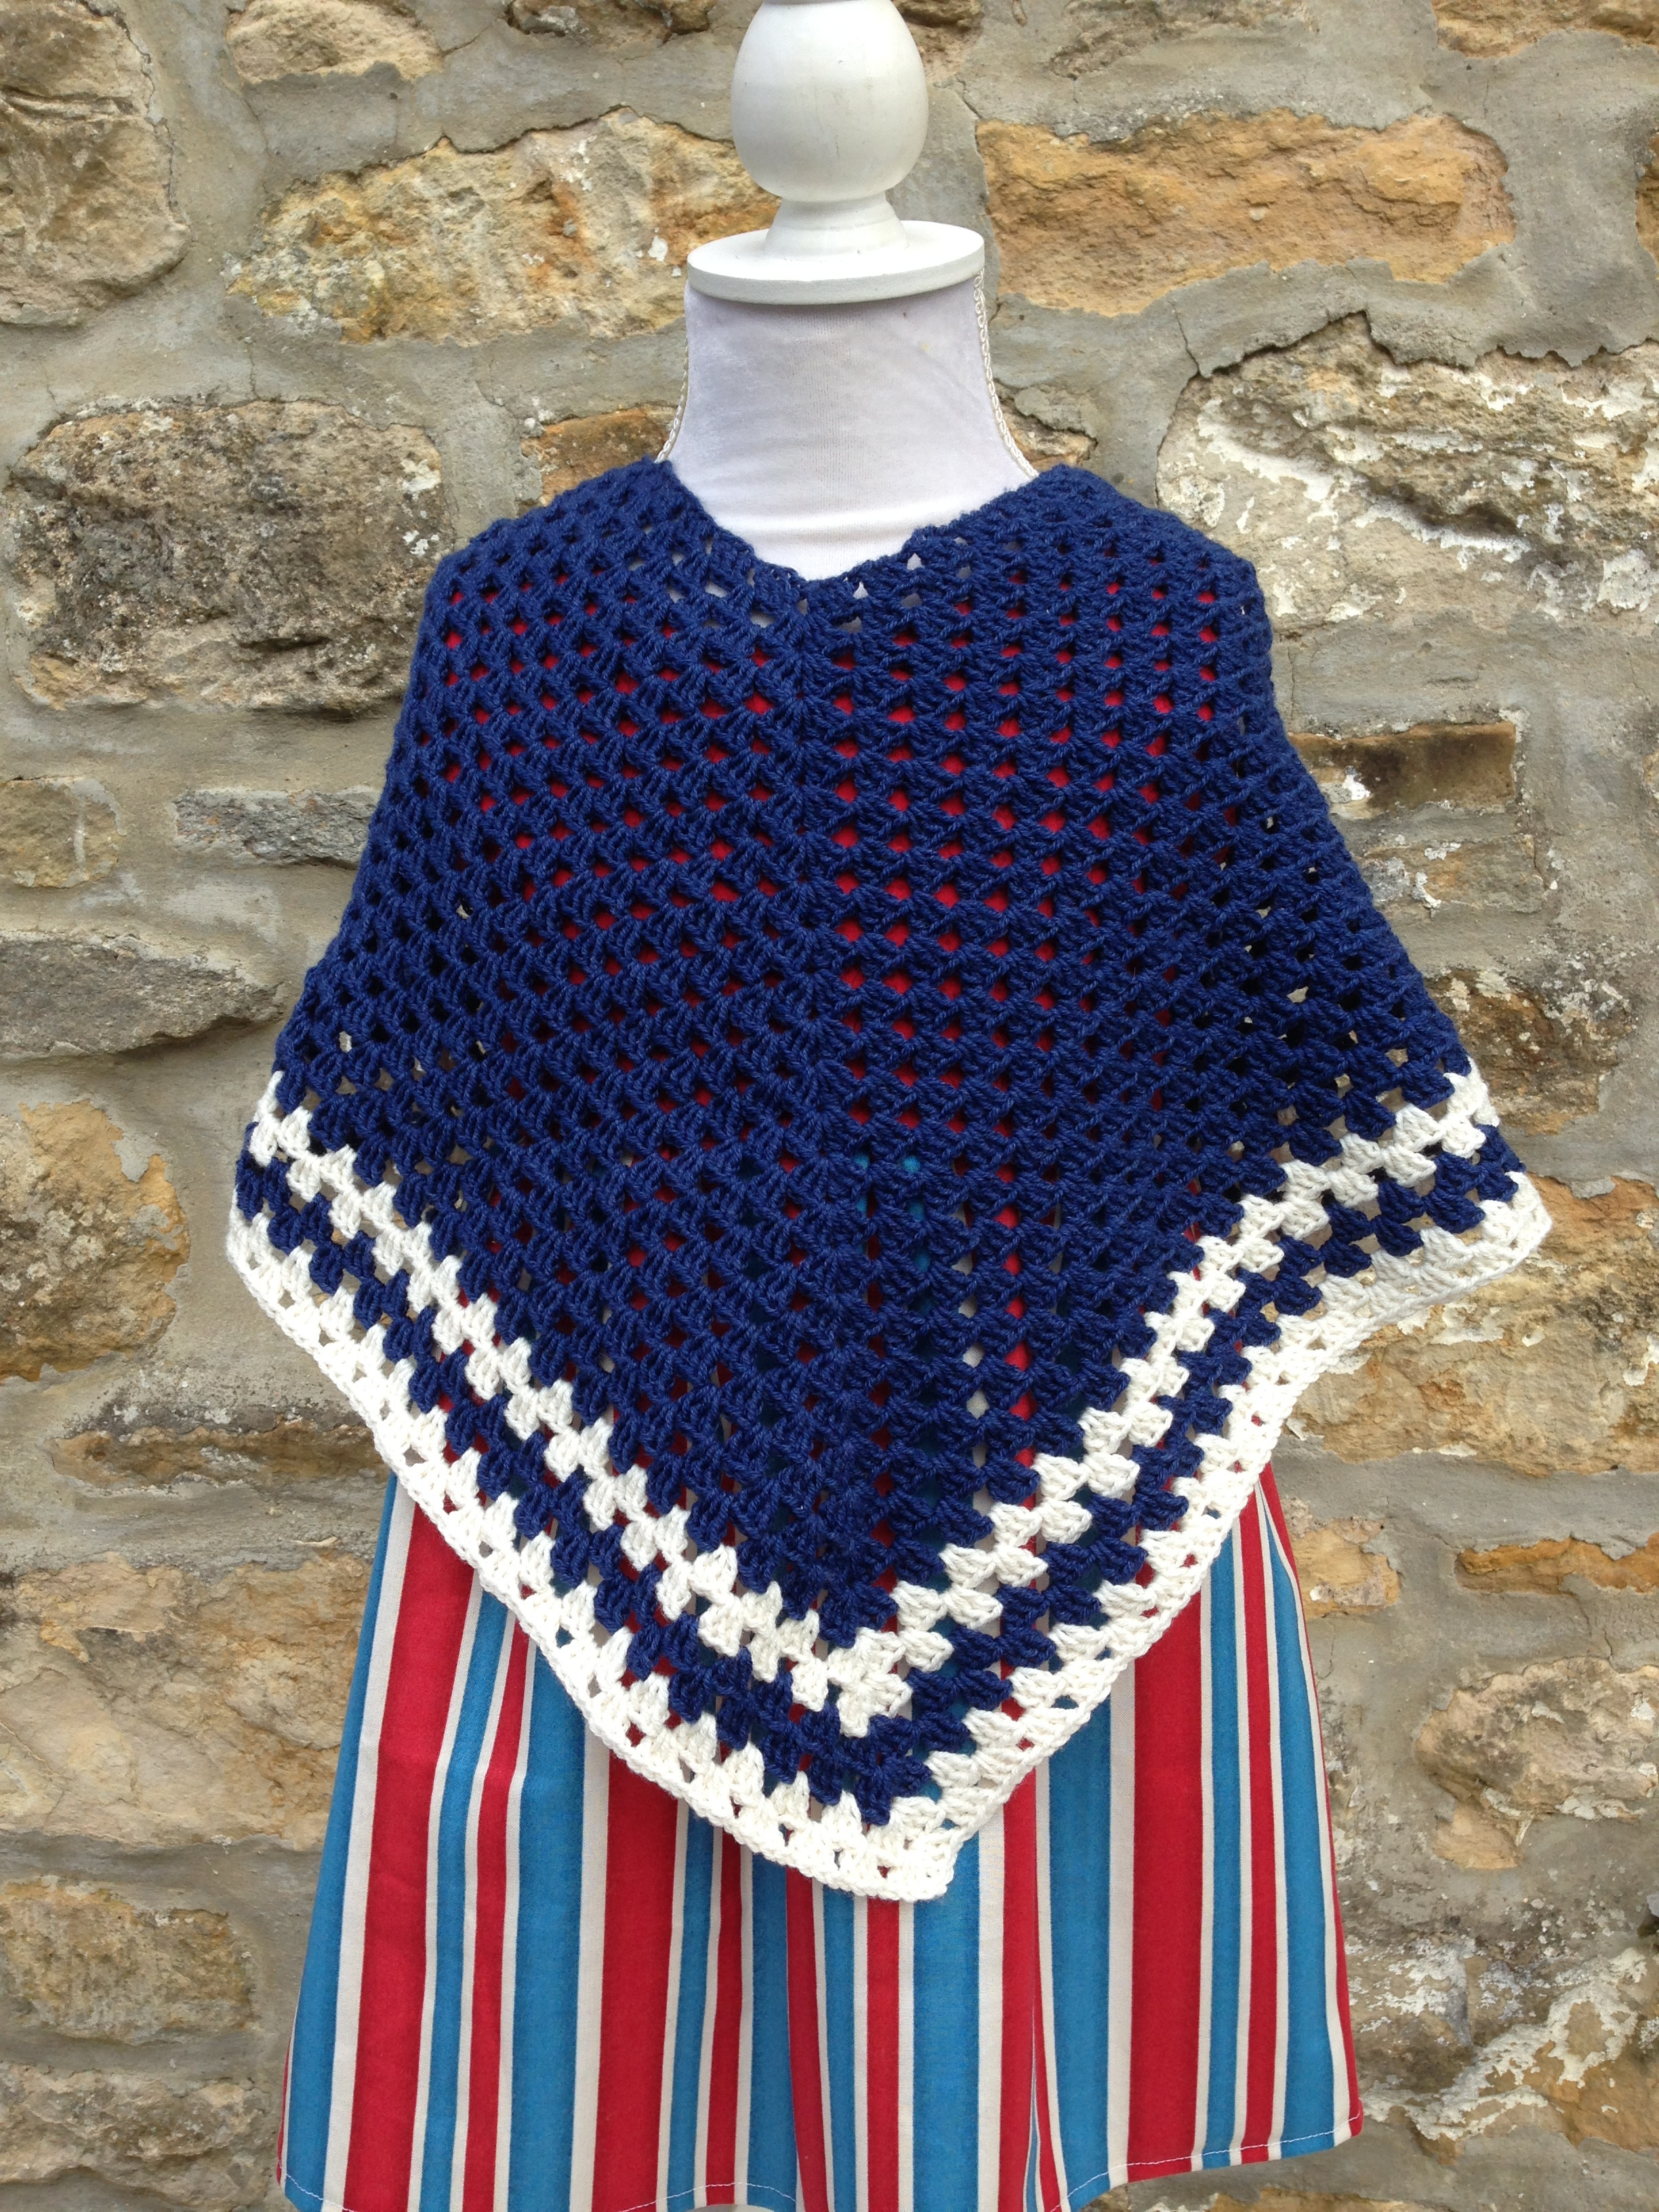 Crochet Child Poncho Inspirational Free Child S Crochet Poncho Pattern Of Crochet Child Poncho Fresh Easy Poncho to Crochet with Puff Stitch Rows